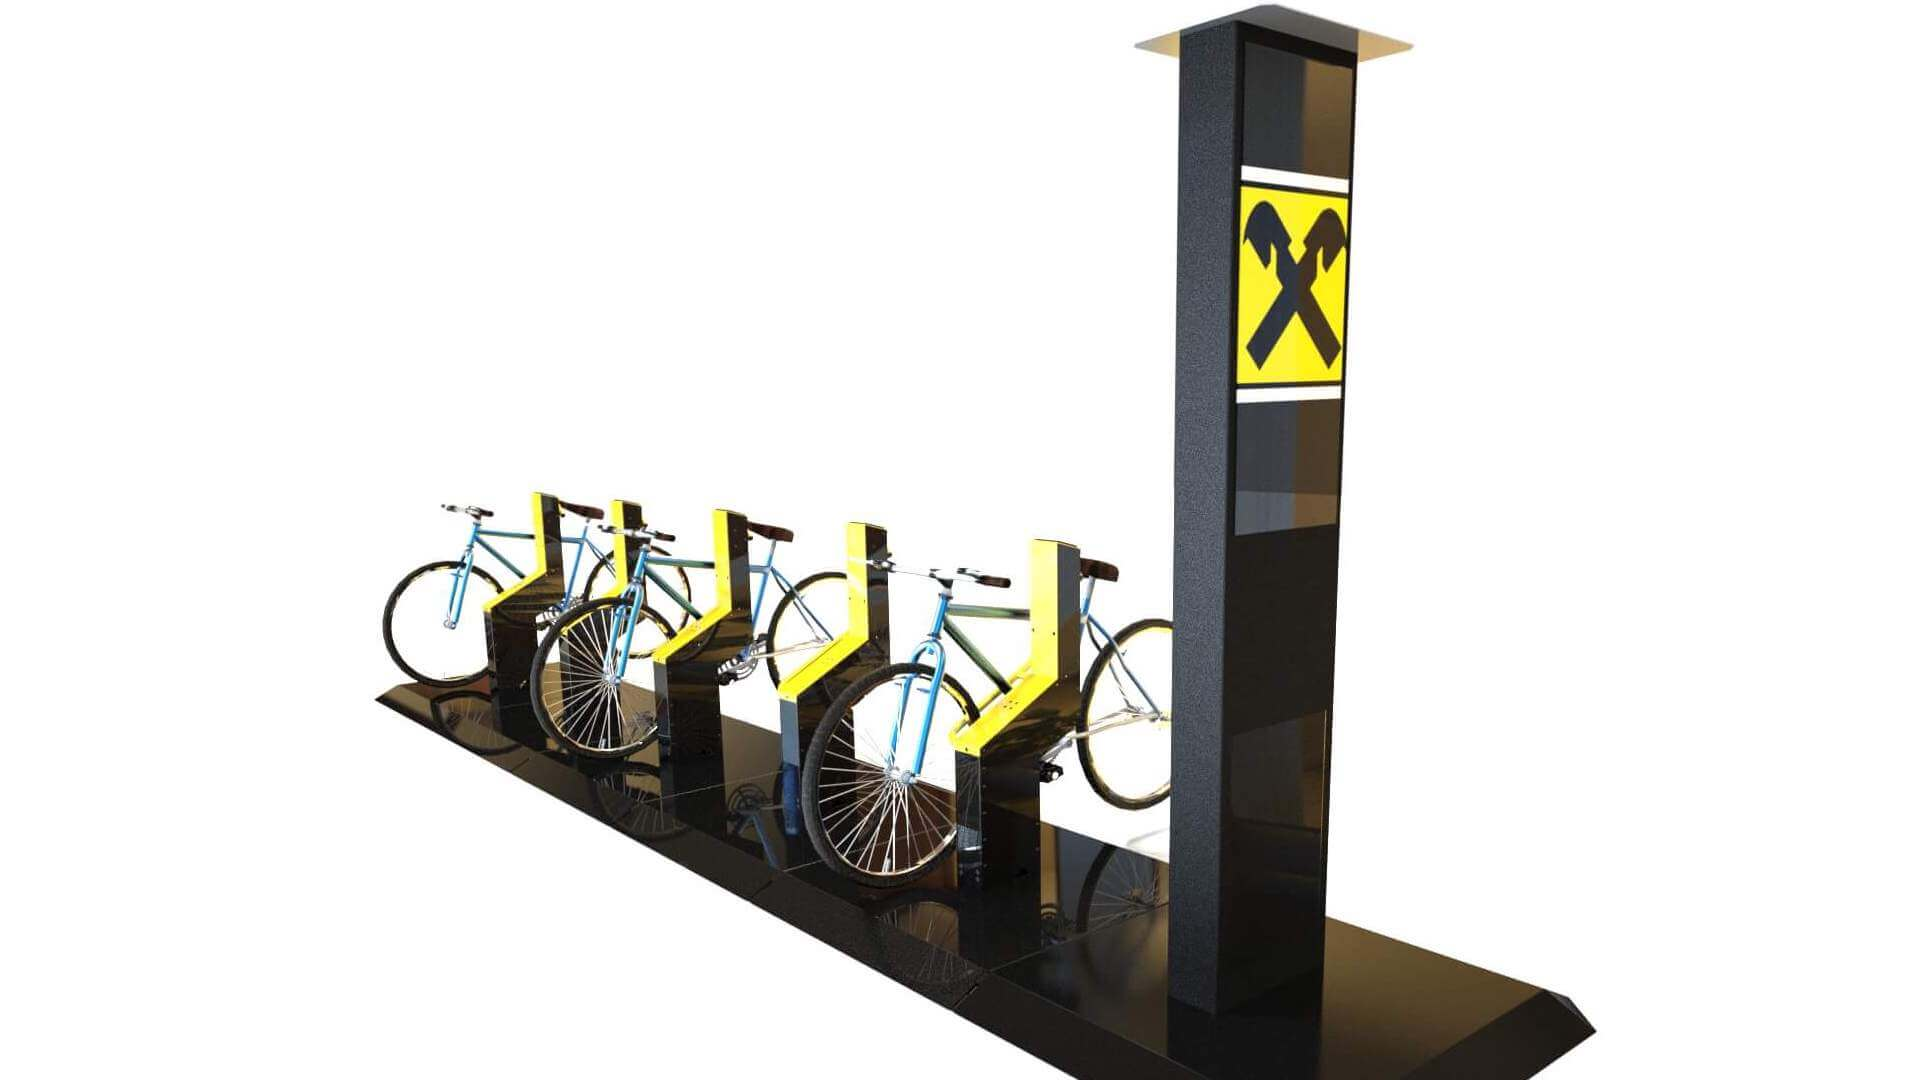 Advetising panel option for bike racks